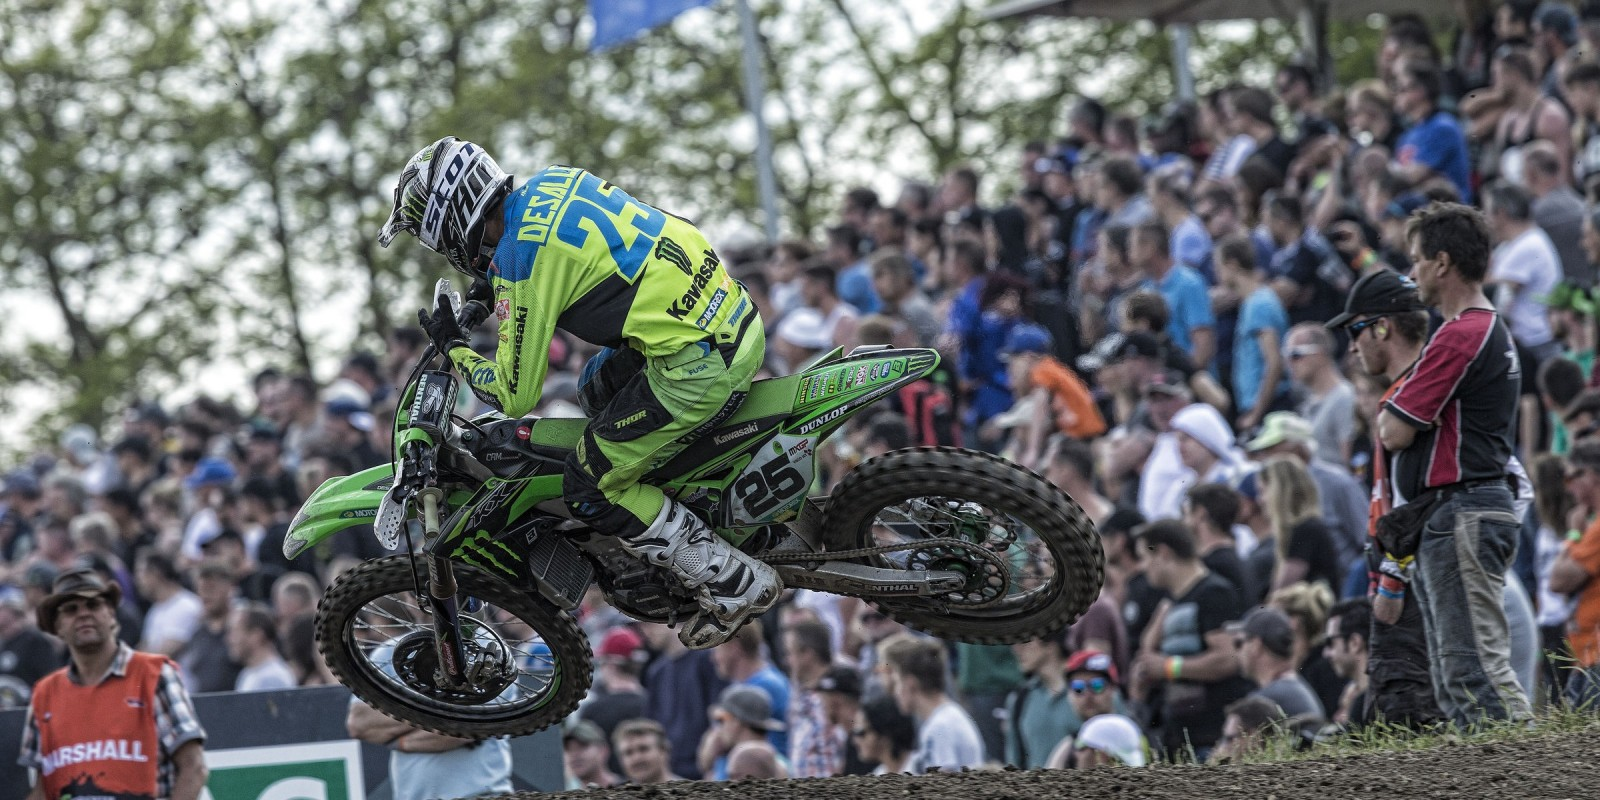 Clement Desalle at the 2017 Grand Prix of Germany